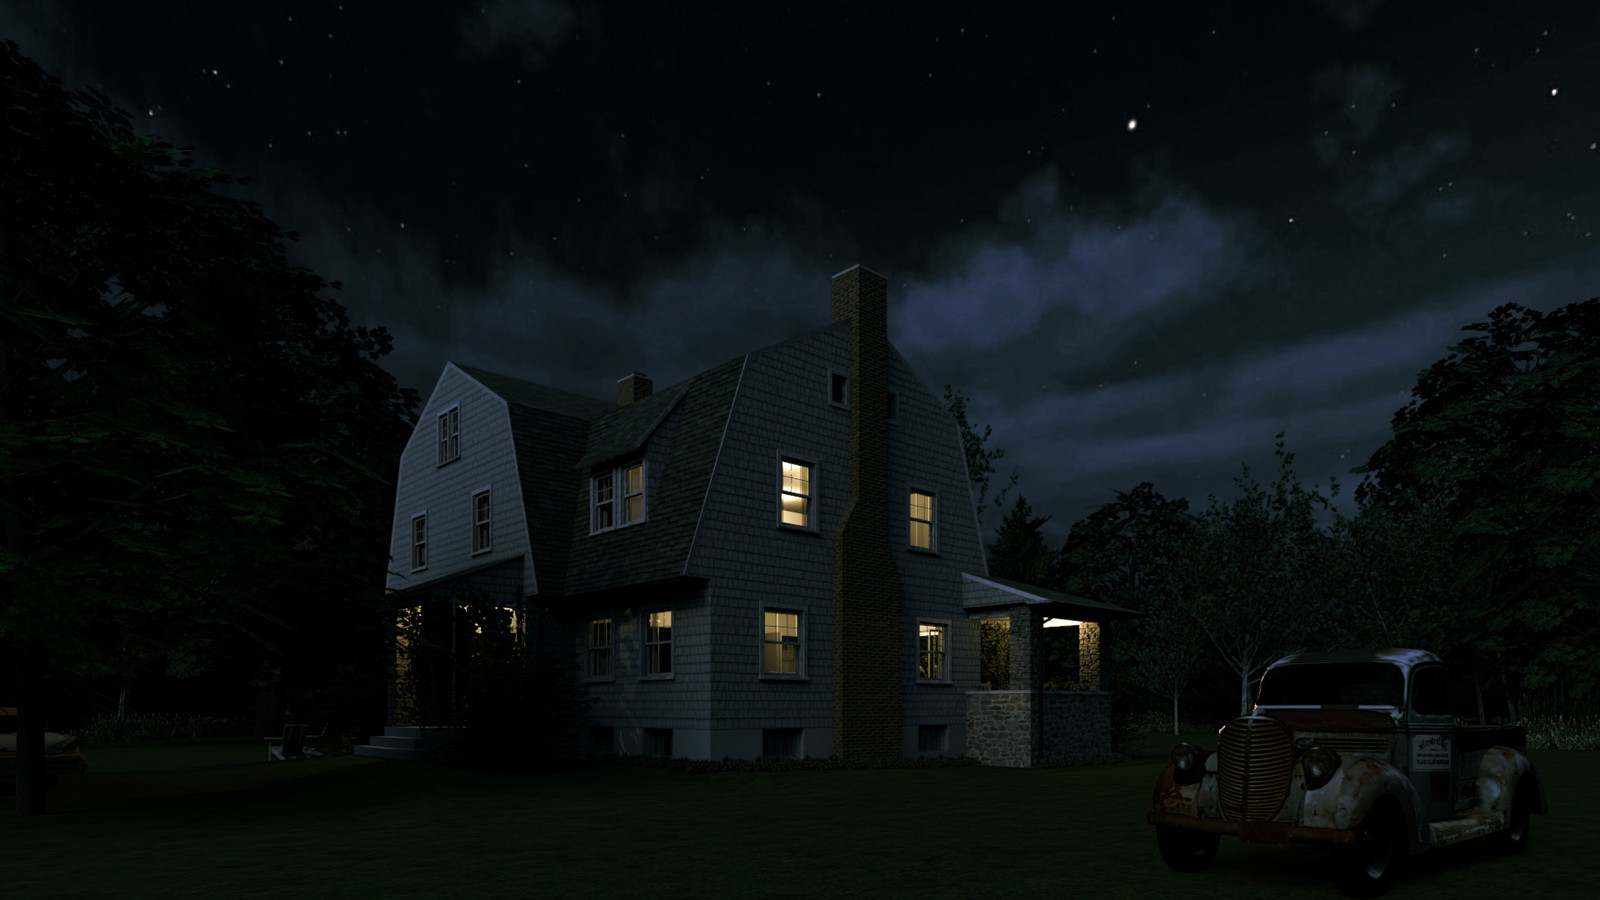 """""""Mason Farm - Moonlight Lullaby"""" Full Moon Collection  32 Masonfarm HD1080 26 - iP Kodac  """"SketchUp to LayOut"""" The Mason Farm Renders for the launching of the new book """"SketchUp to LayOut"""" http://bit.ly/2j0d0Wh by MasterSketchup."""